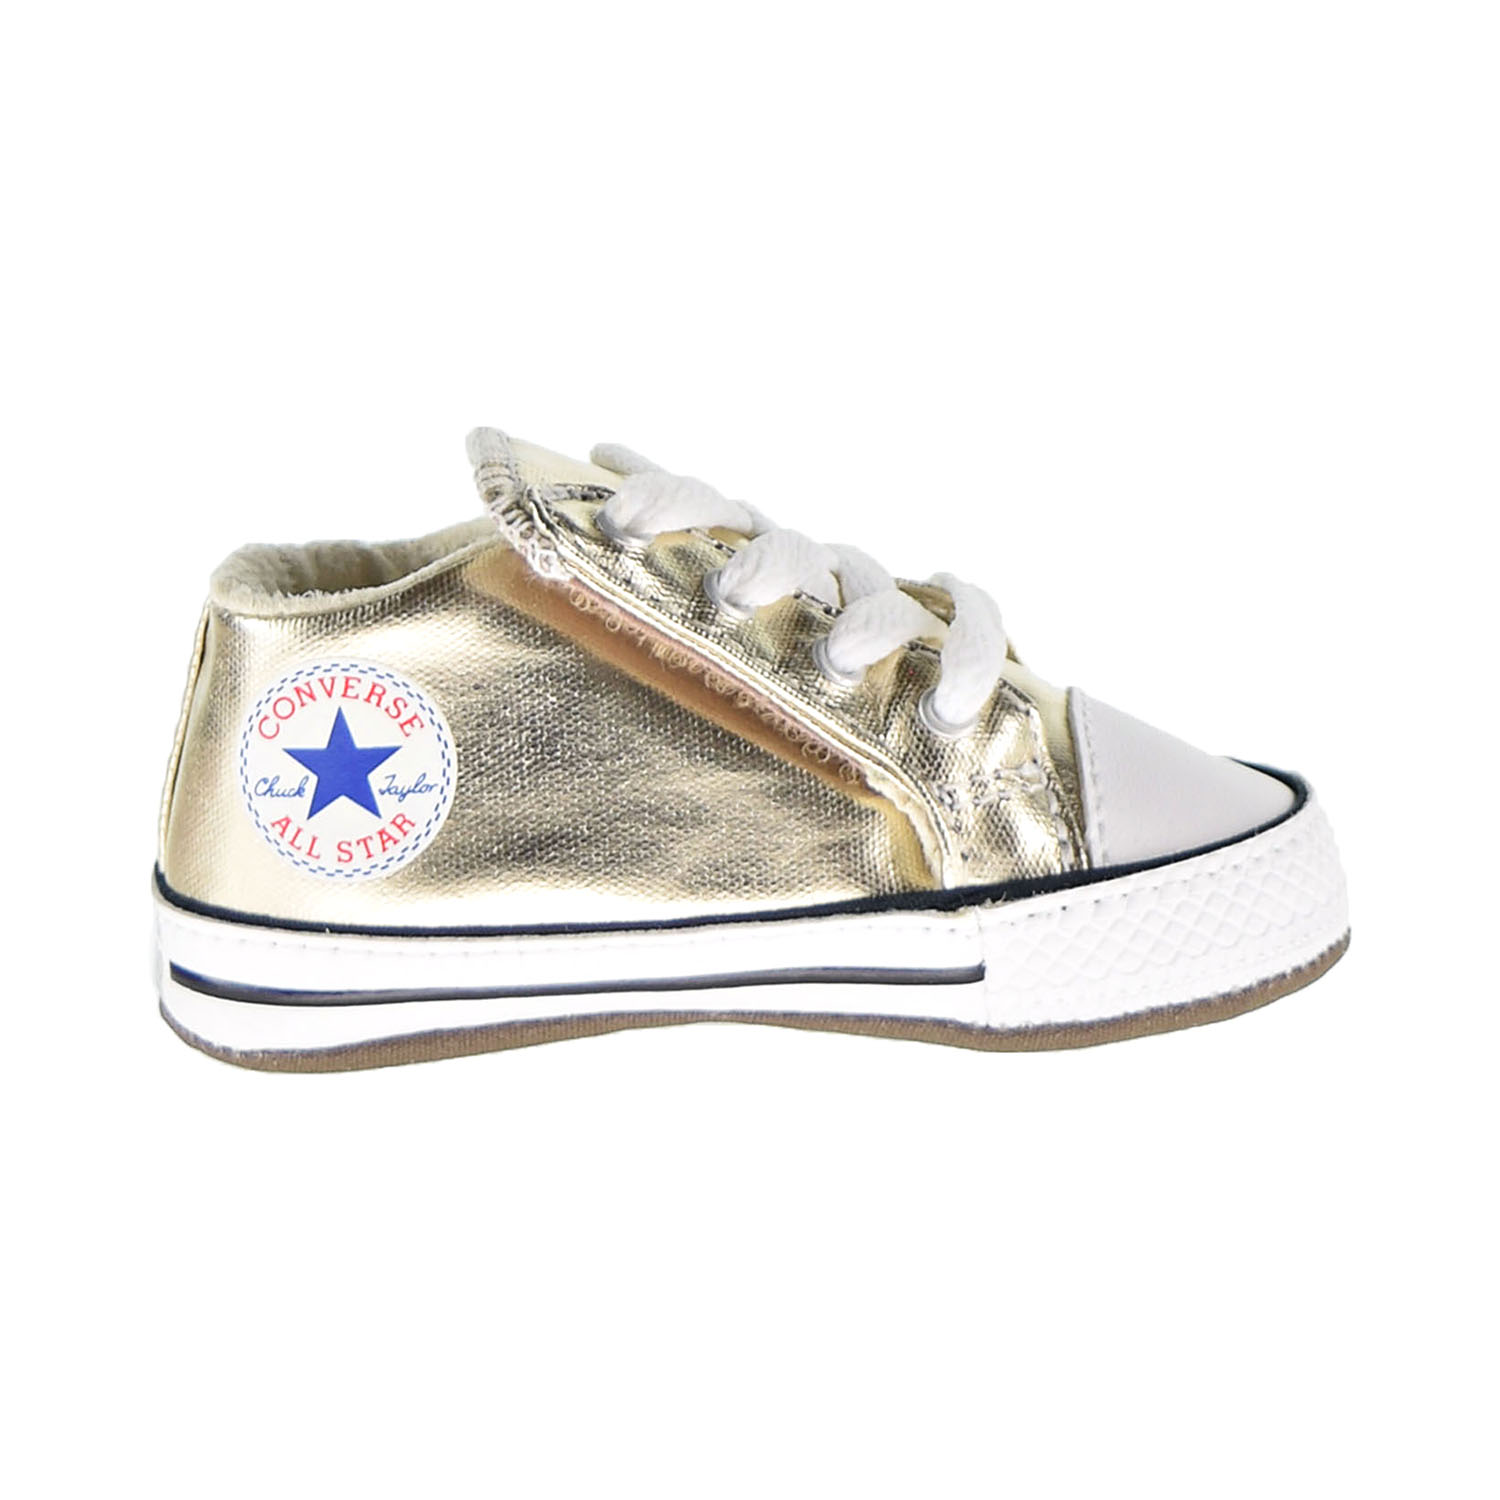 Details about Converse Chuck Taylor All Star Cribster Mid Baby Shoes Light Gold Ivory 866037C